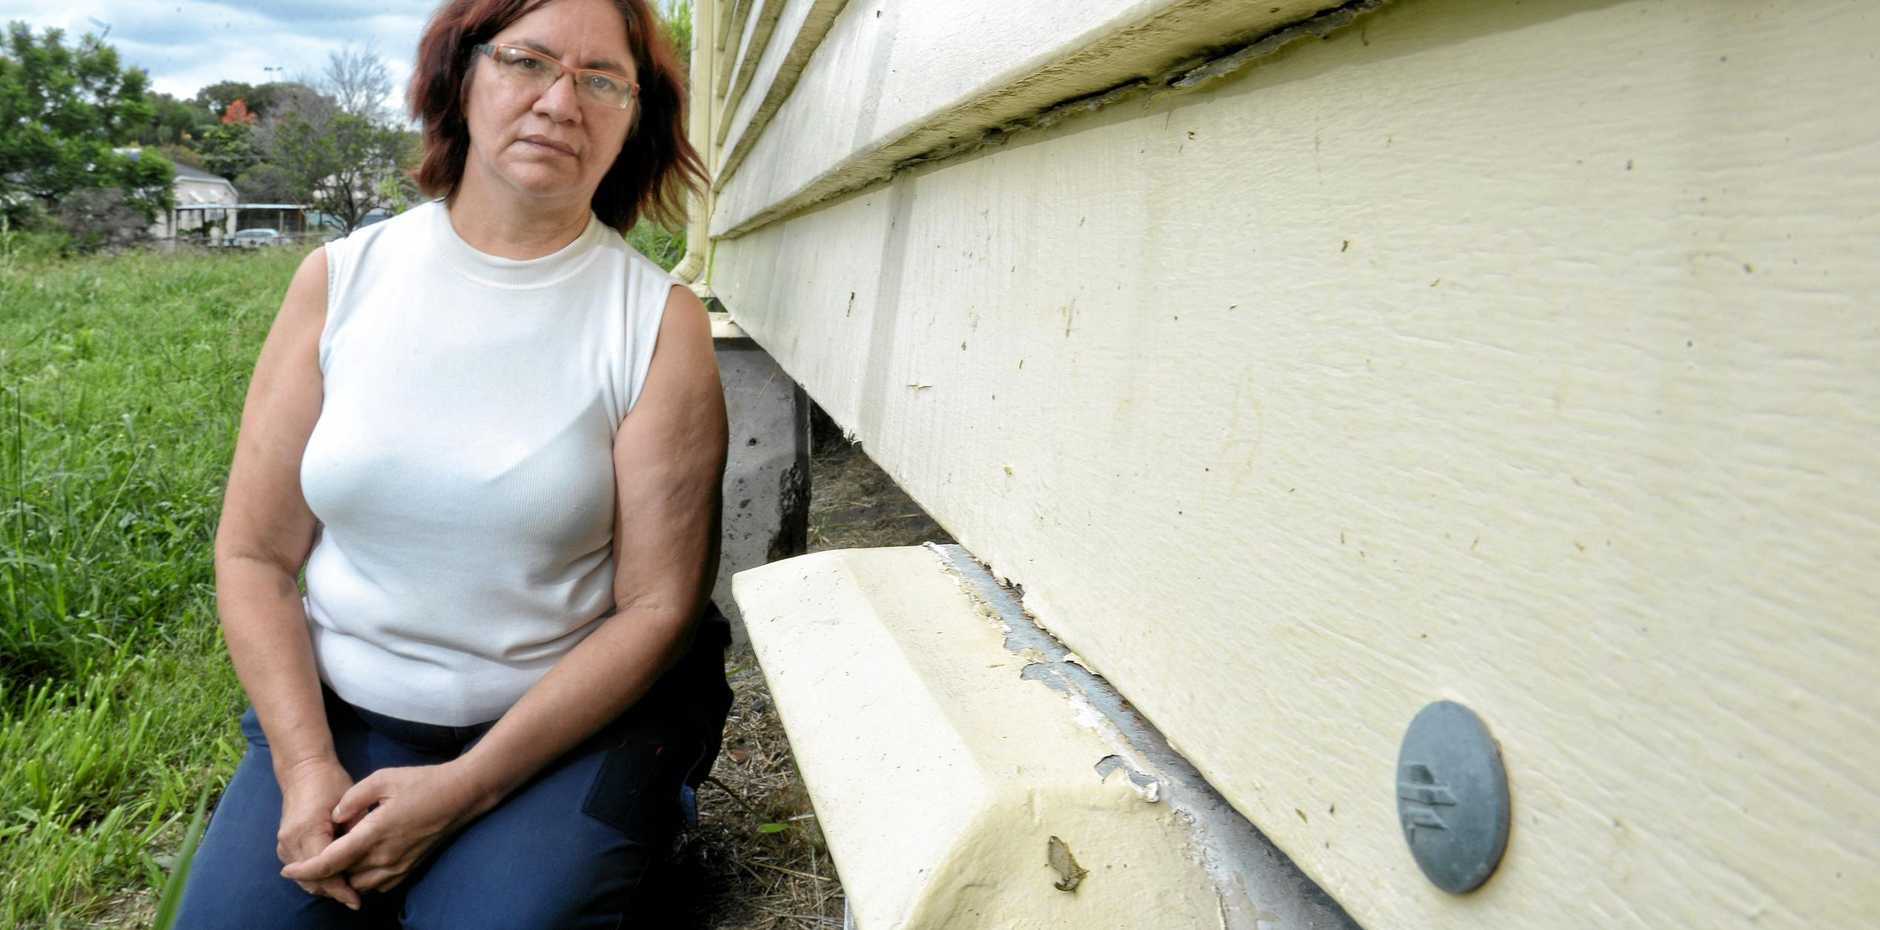 INSURANCE CLAIM: Jessie Harlow inspects the damage to her North Ipswich home she believes was caused by high winds in a storm in October last year.